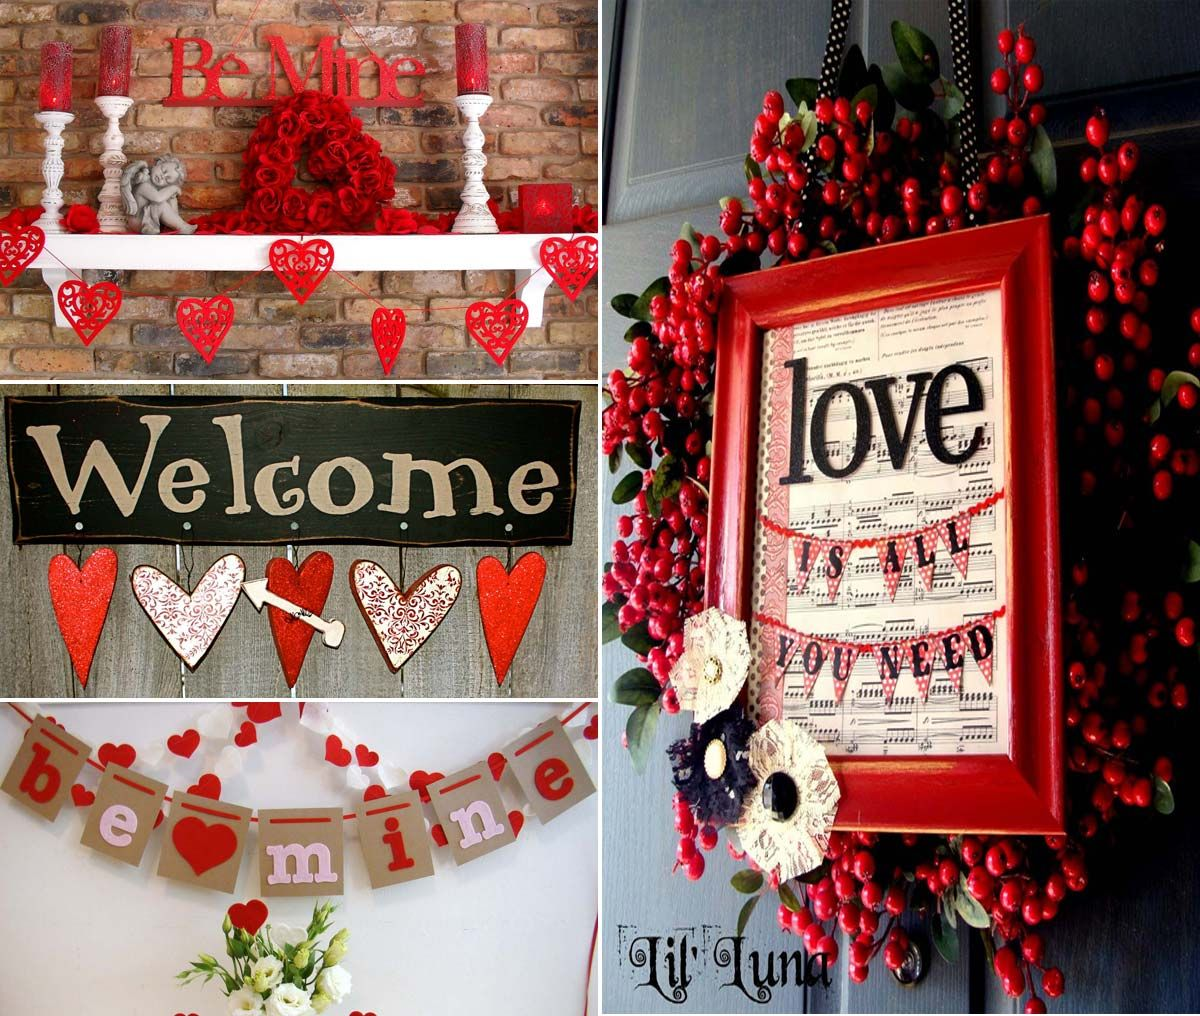 Valentines decor | valentineu0027s day decorations ideas 2014 to decorate  bedroom,office and .